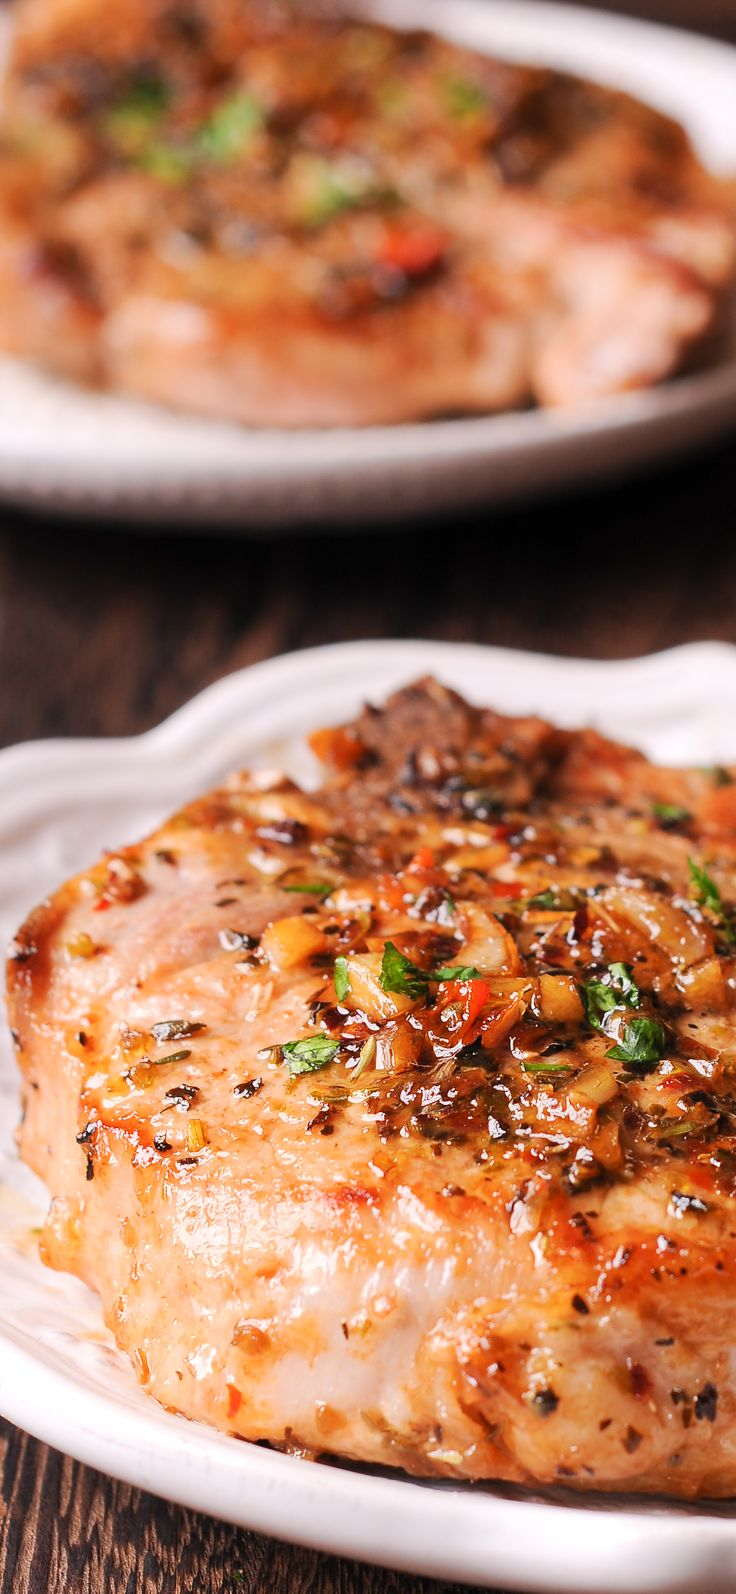 Pork chops and garlic brown butter and herb sauce